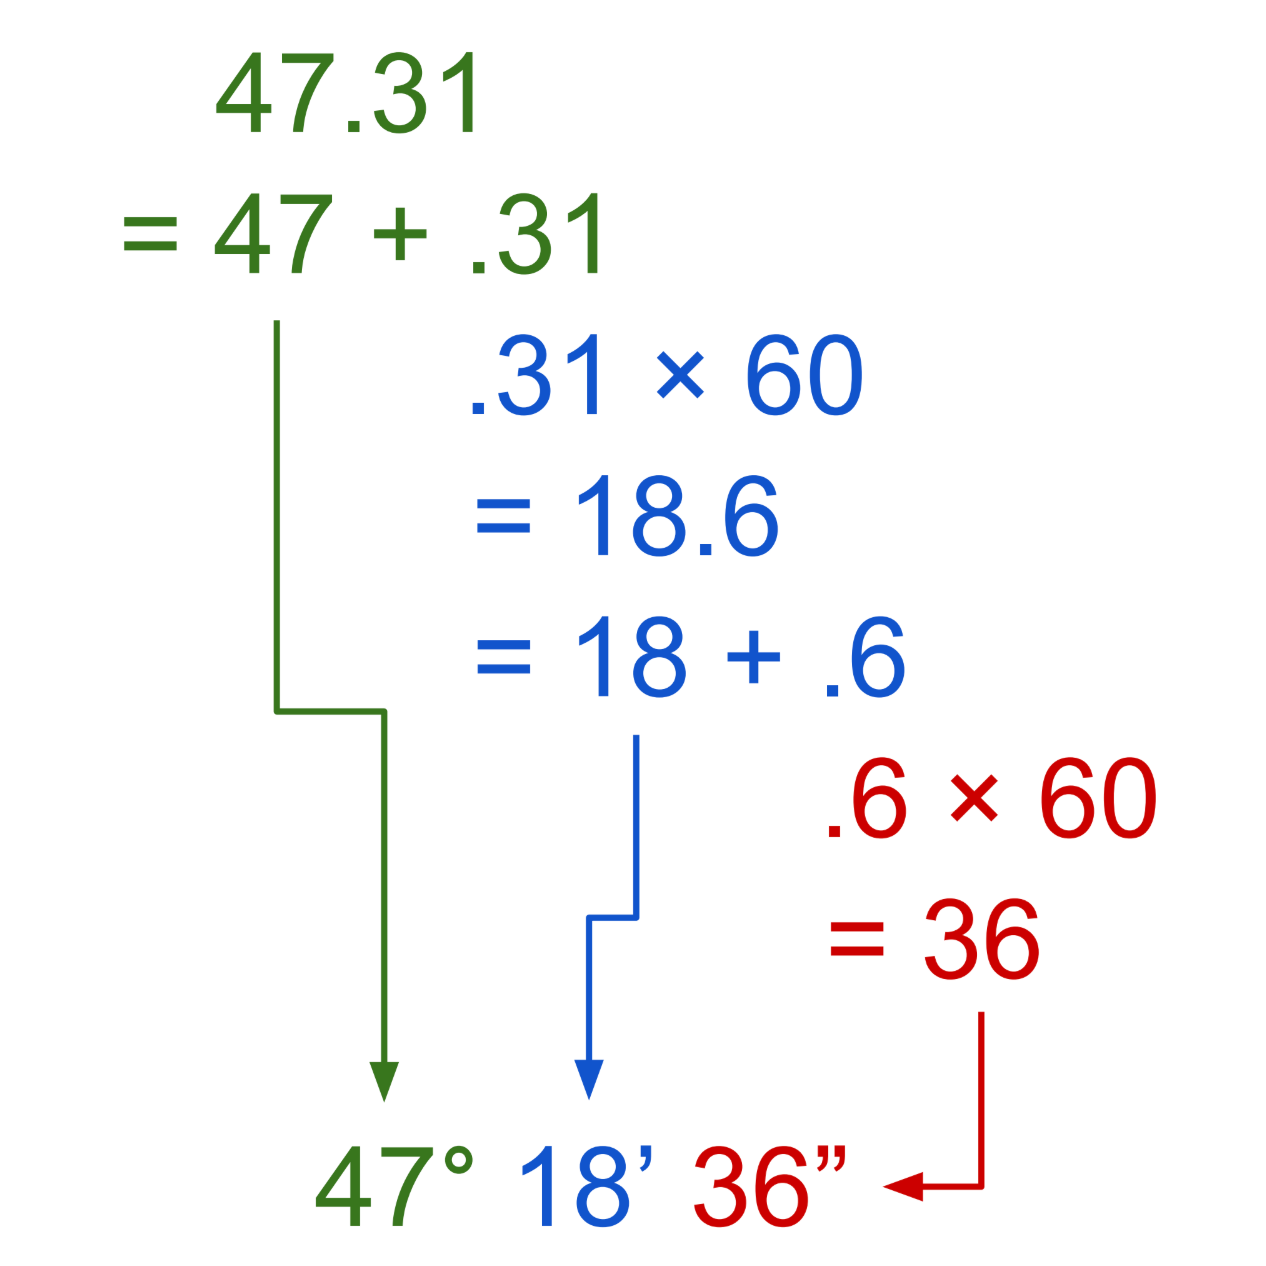 graphic showing how to apply the equations to convert degrees in decimal to minutes & seconds